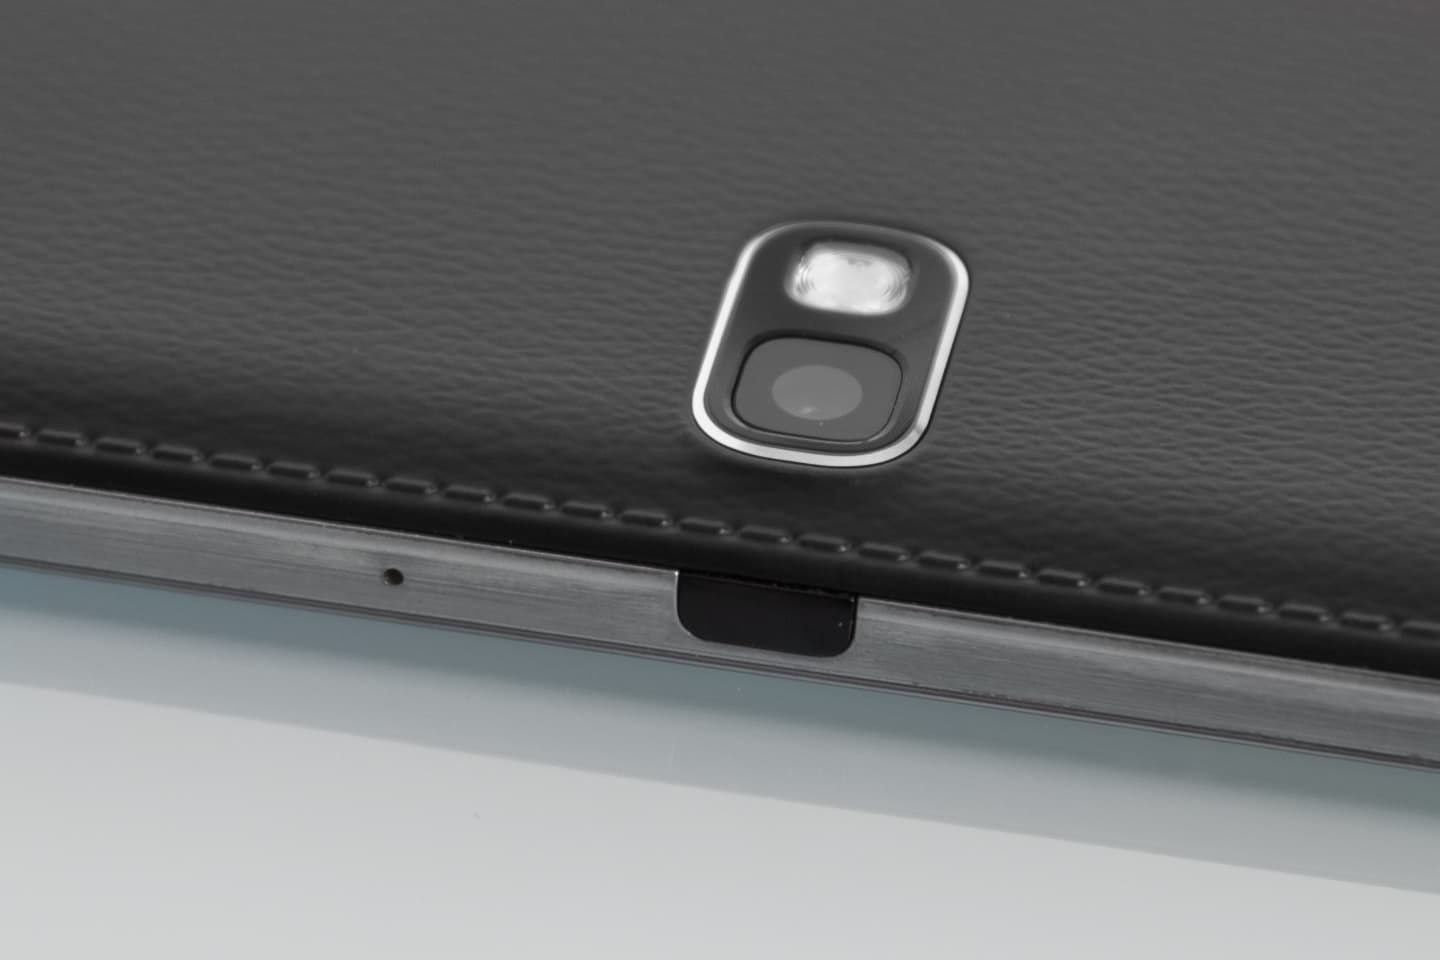 """A close-up of the IR blaster of the Samsung Galaxy Note Pro 12.2""""."""